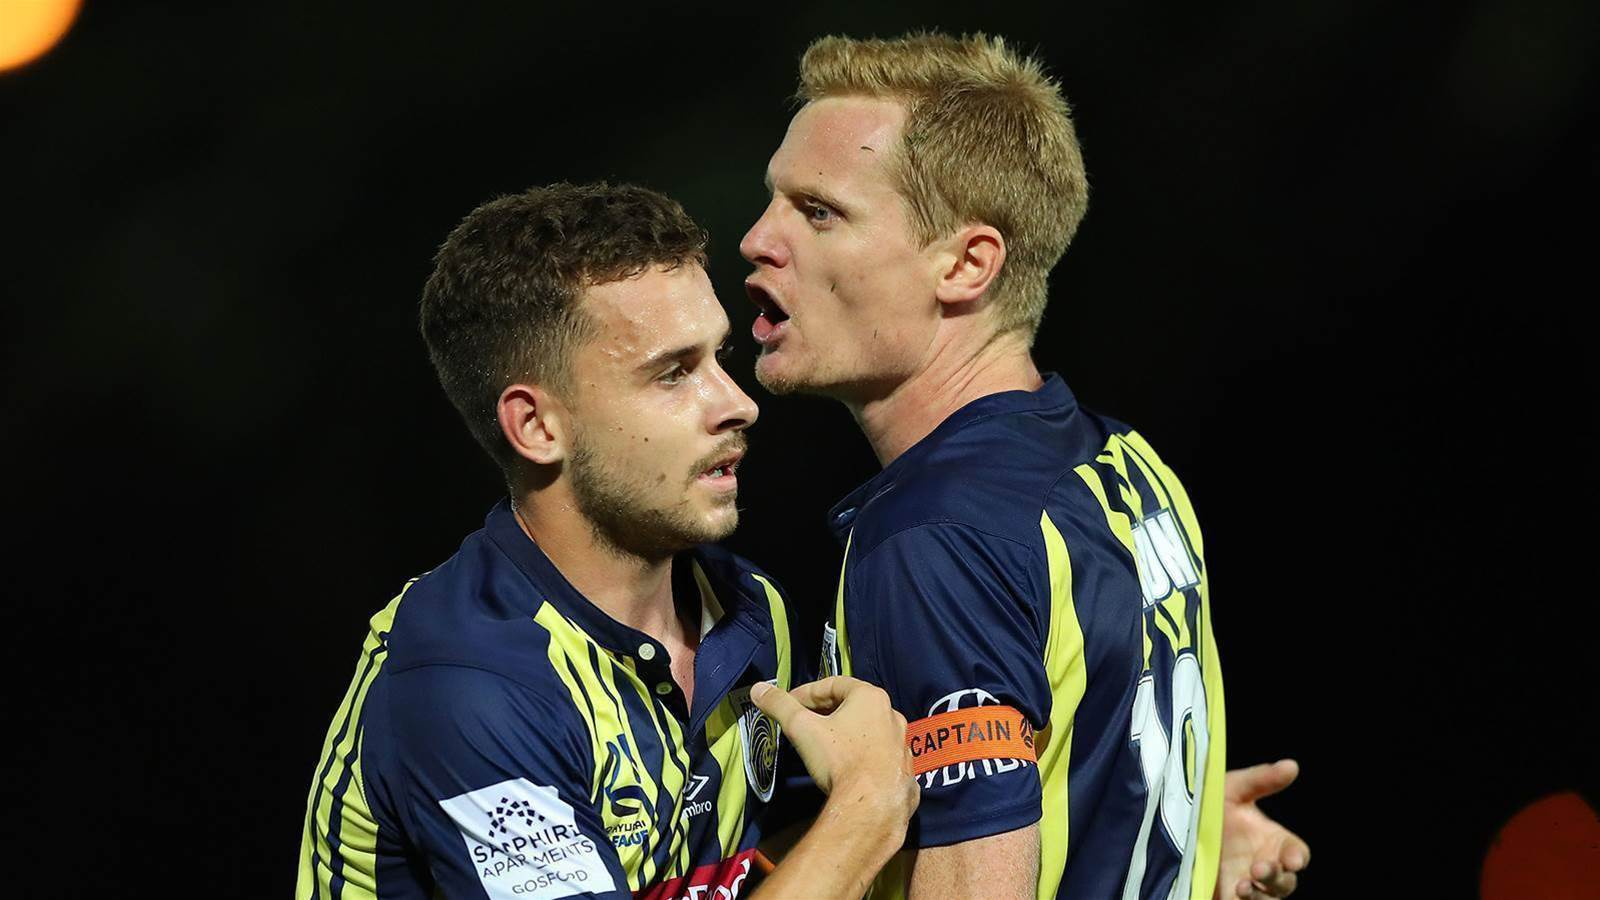 Simon warned after getting two match ban